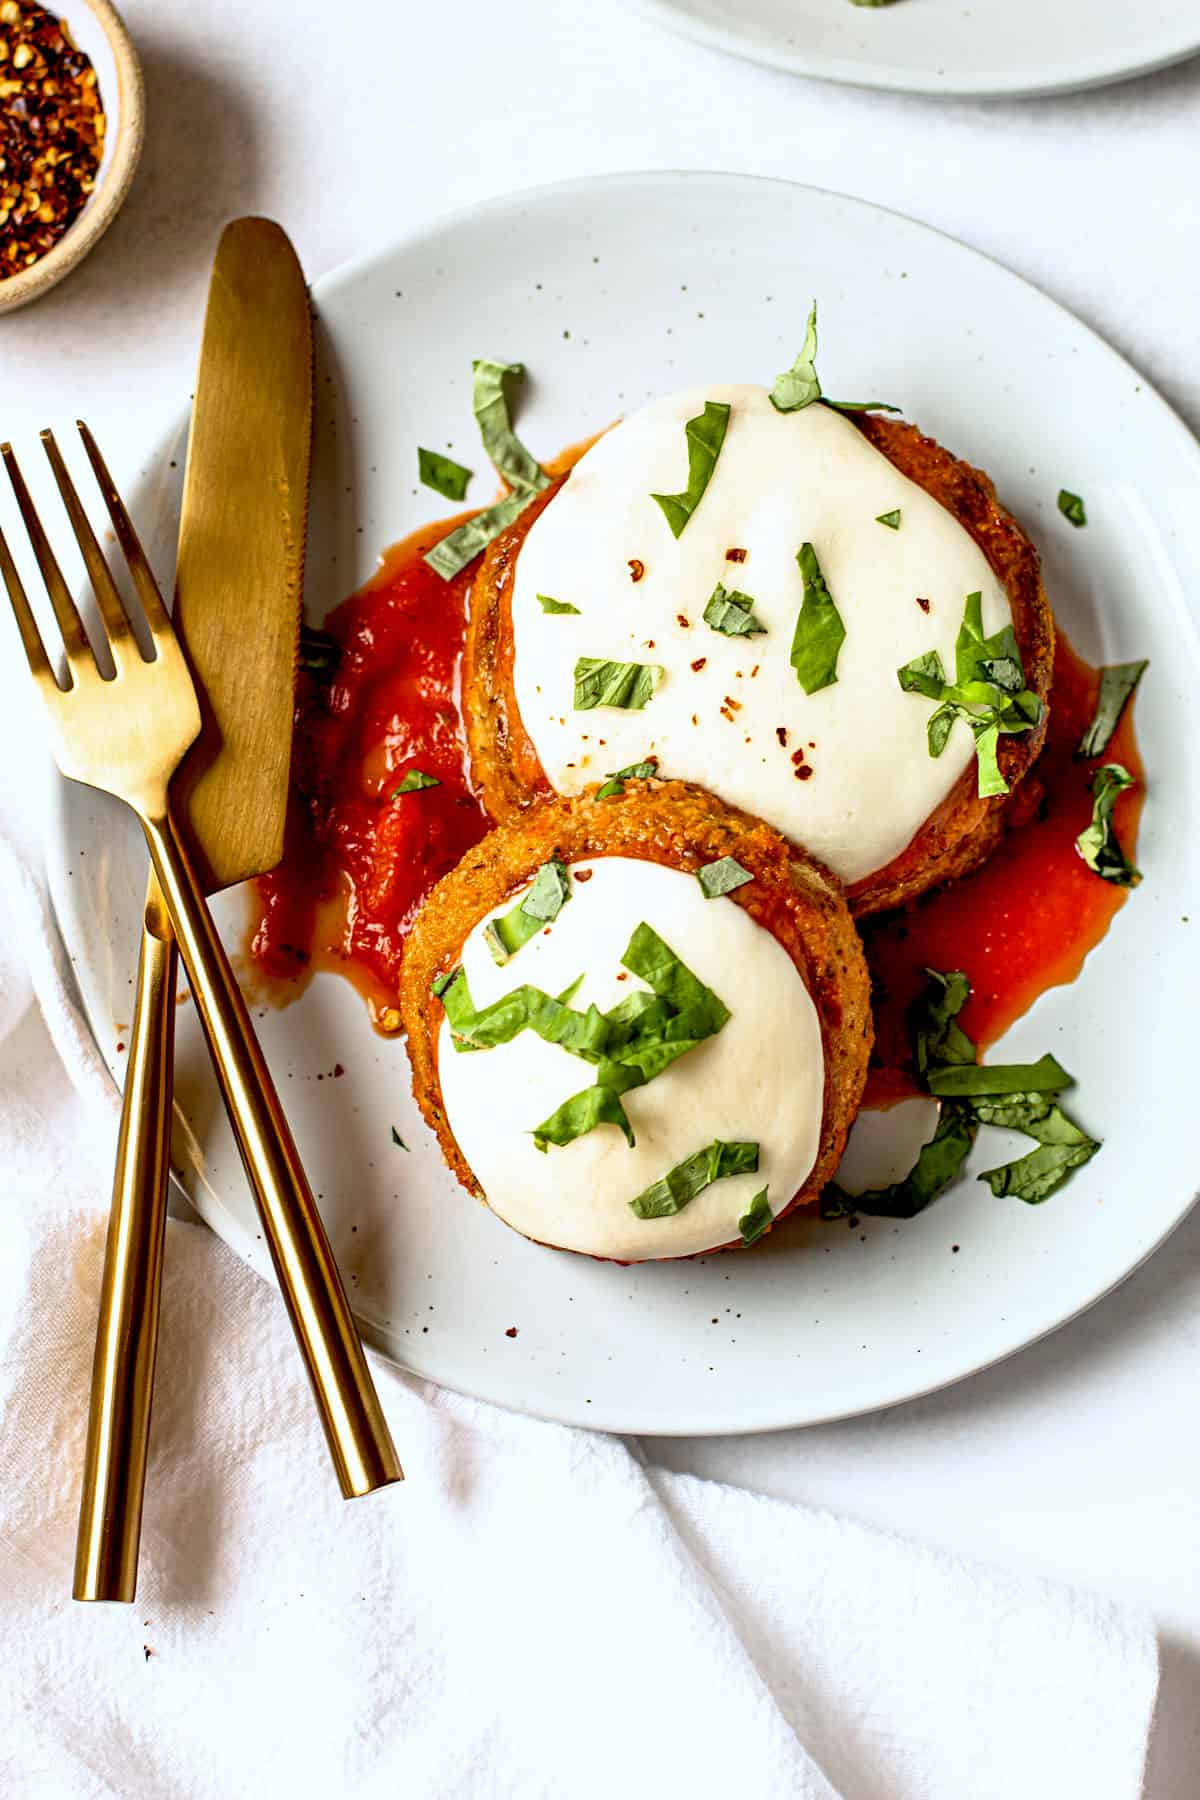 Air fryer eggplant parm on a plate.